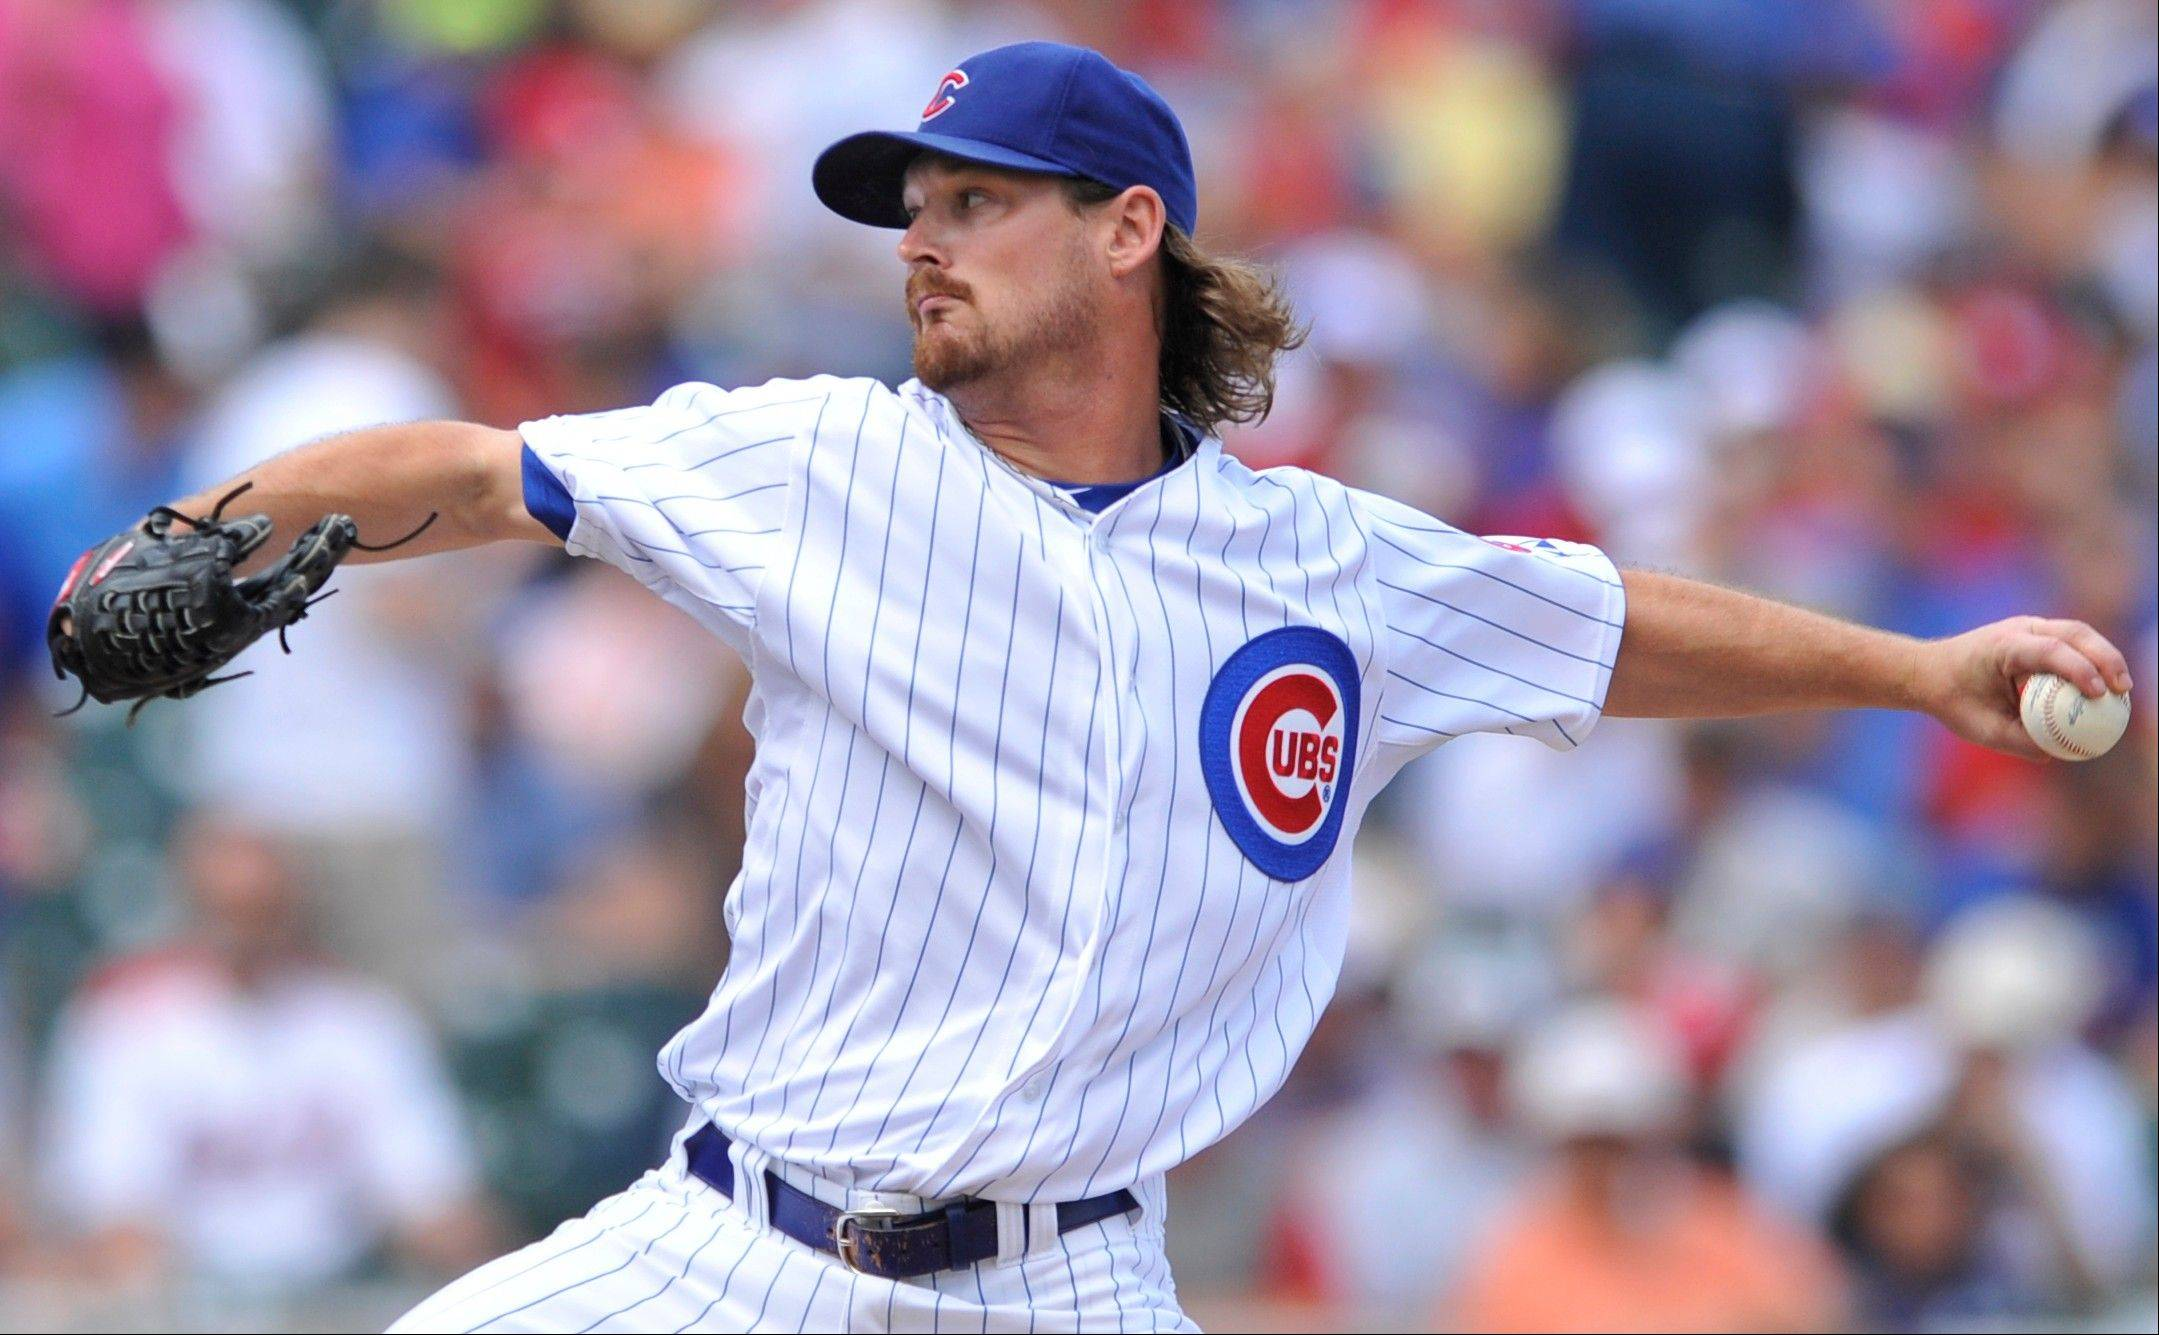 The Cubs' Travis Wood served up a home run in each of the first five innings Friday, becoming the first starting pitcher in major-league history to accomplish the dubious feat.